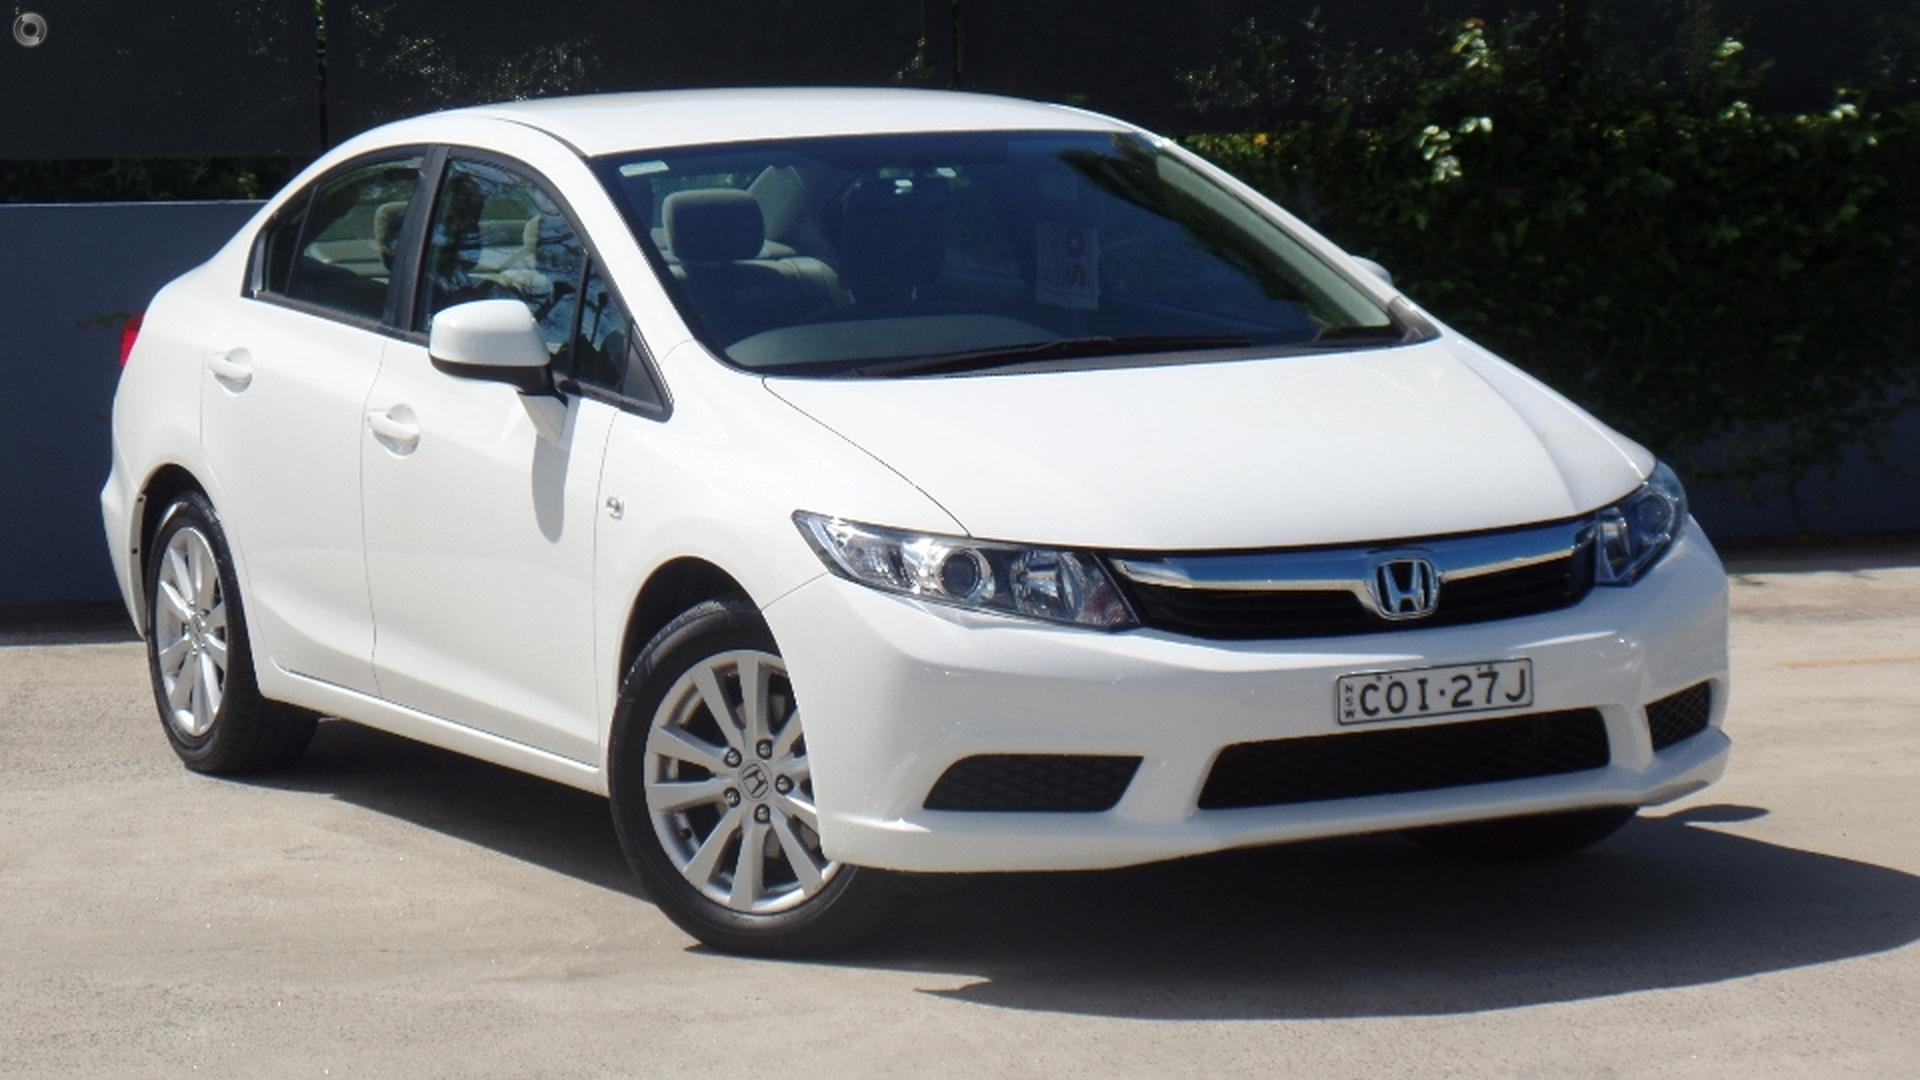 2012 Honda Civic 9th Gen Ser II